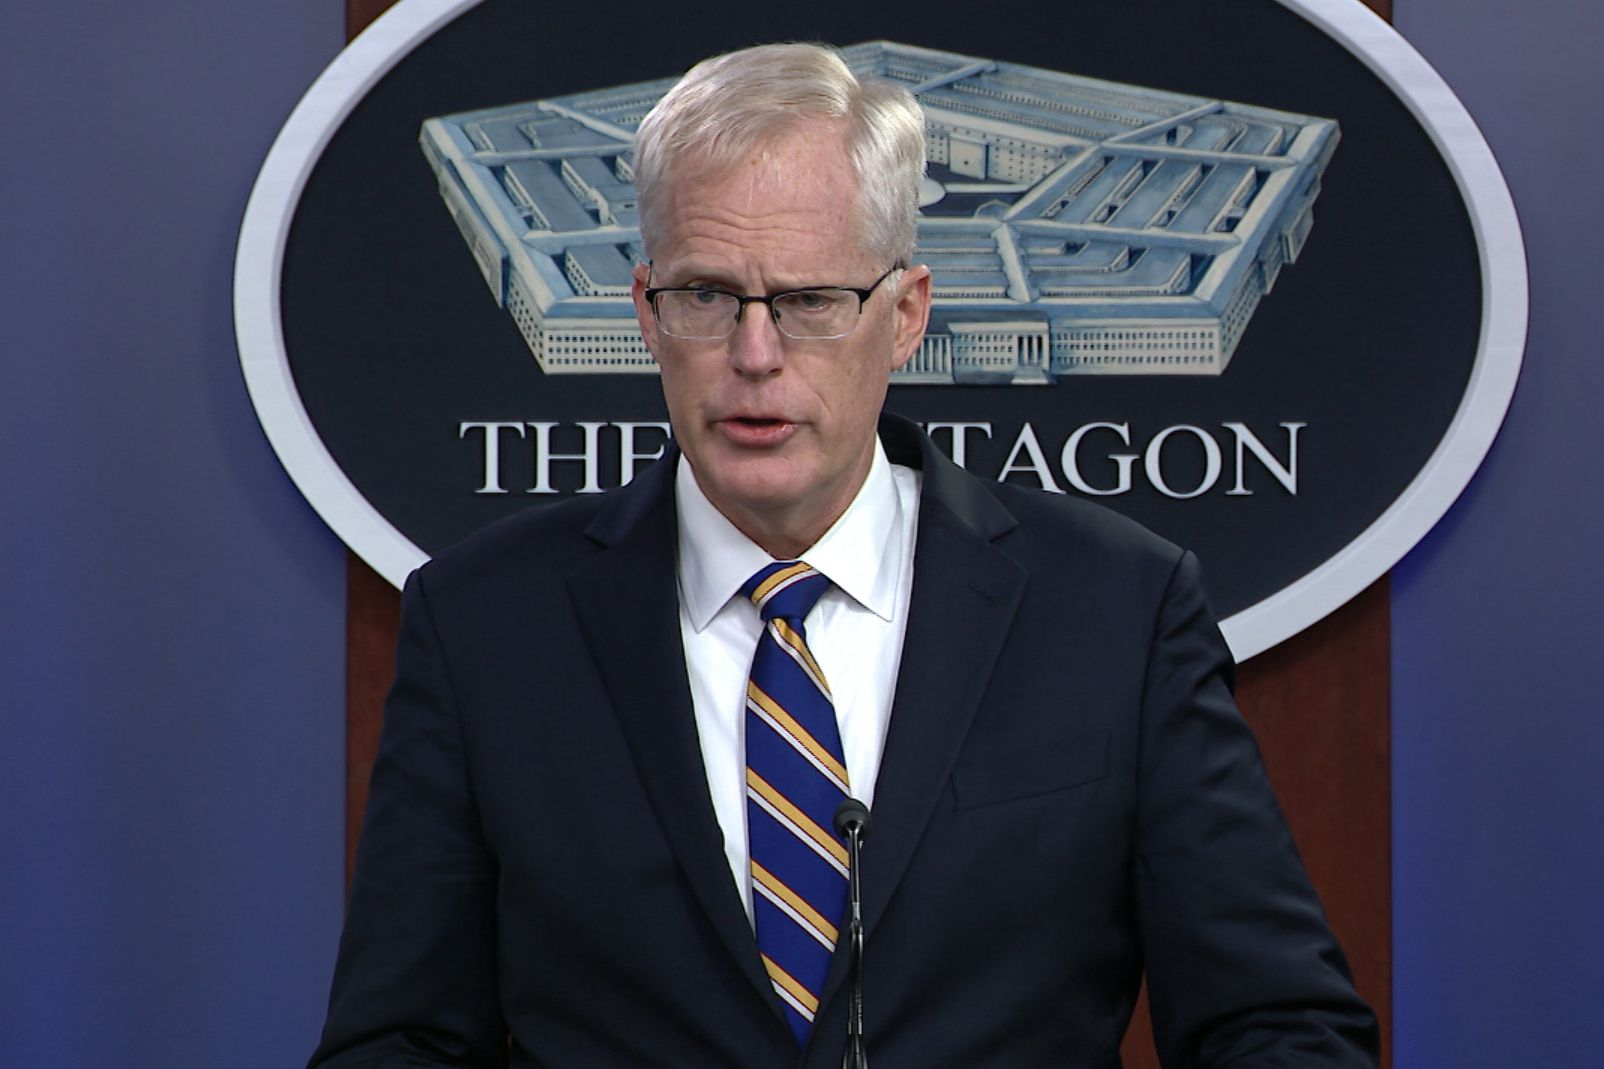 Acting Pentagon chief cites risks during troop reductions in Afghanistan and Iraq